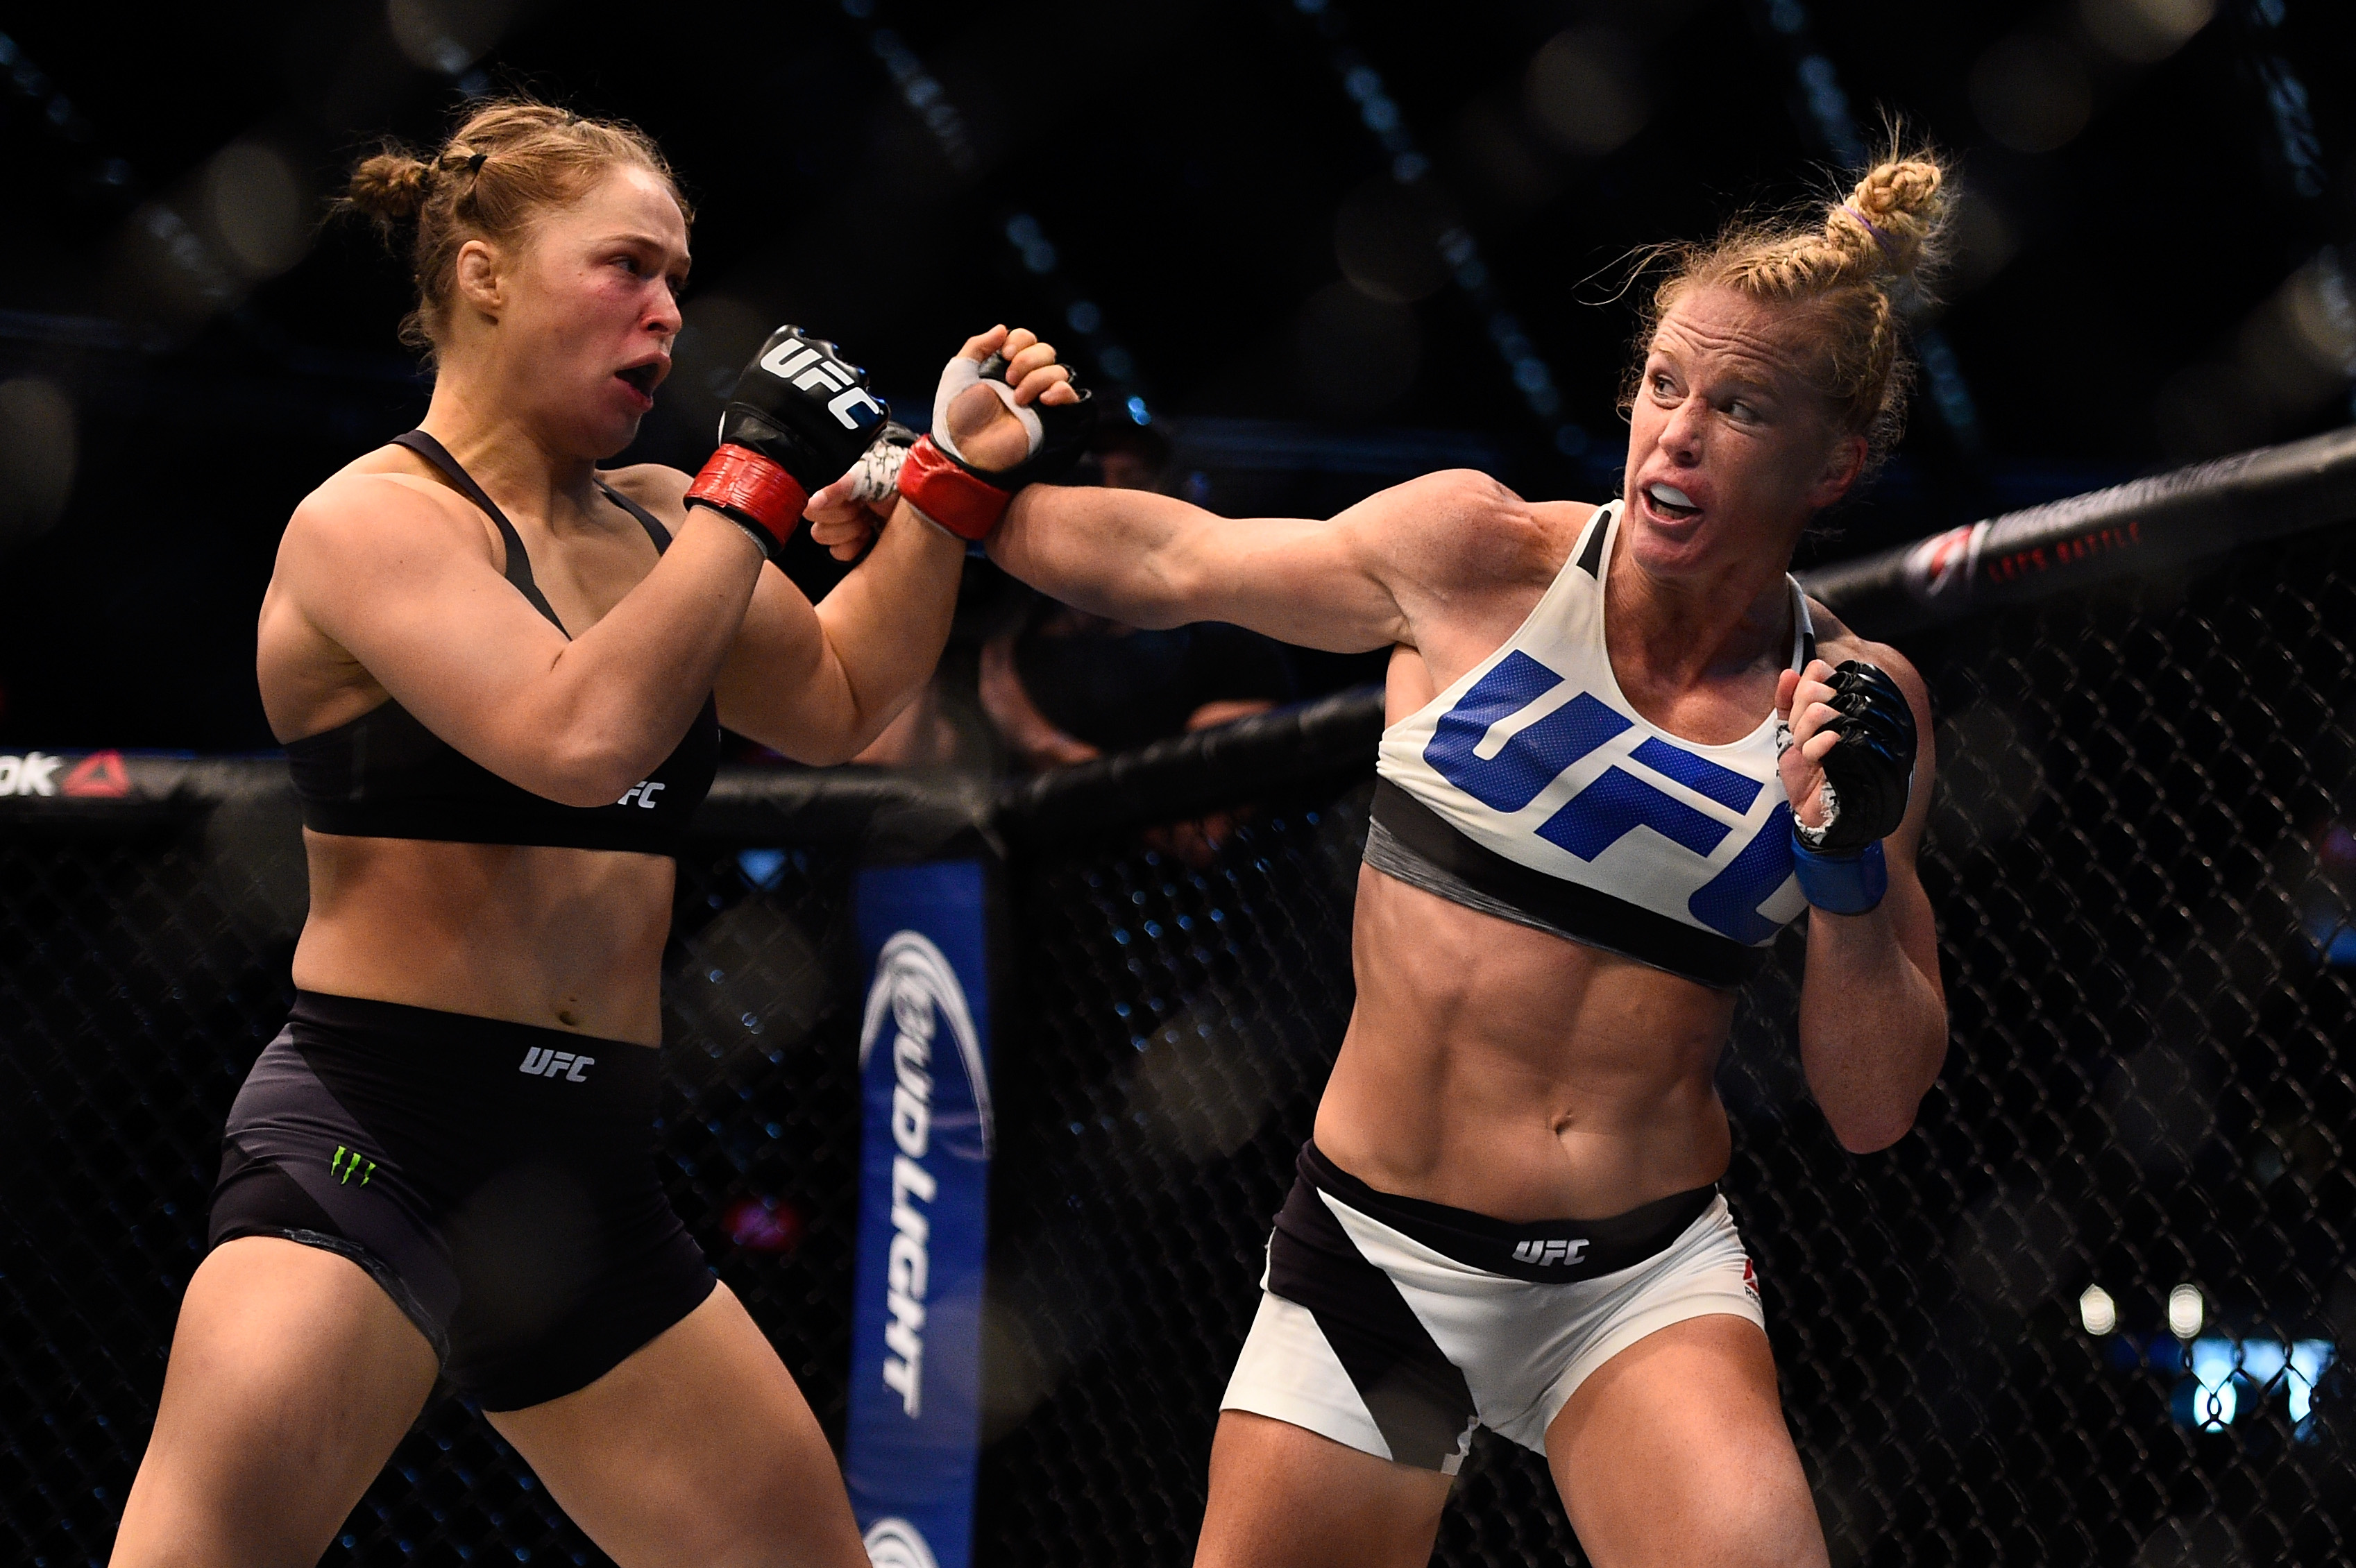 Ronda Rousey blocks a punch from Holly Holm in their UFC women's bantamweight championship bout during the UFC 193 event at Etihad Stadium on November 15, 2015 in Melbourne, Australia.